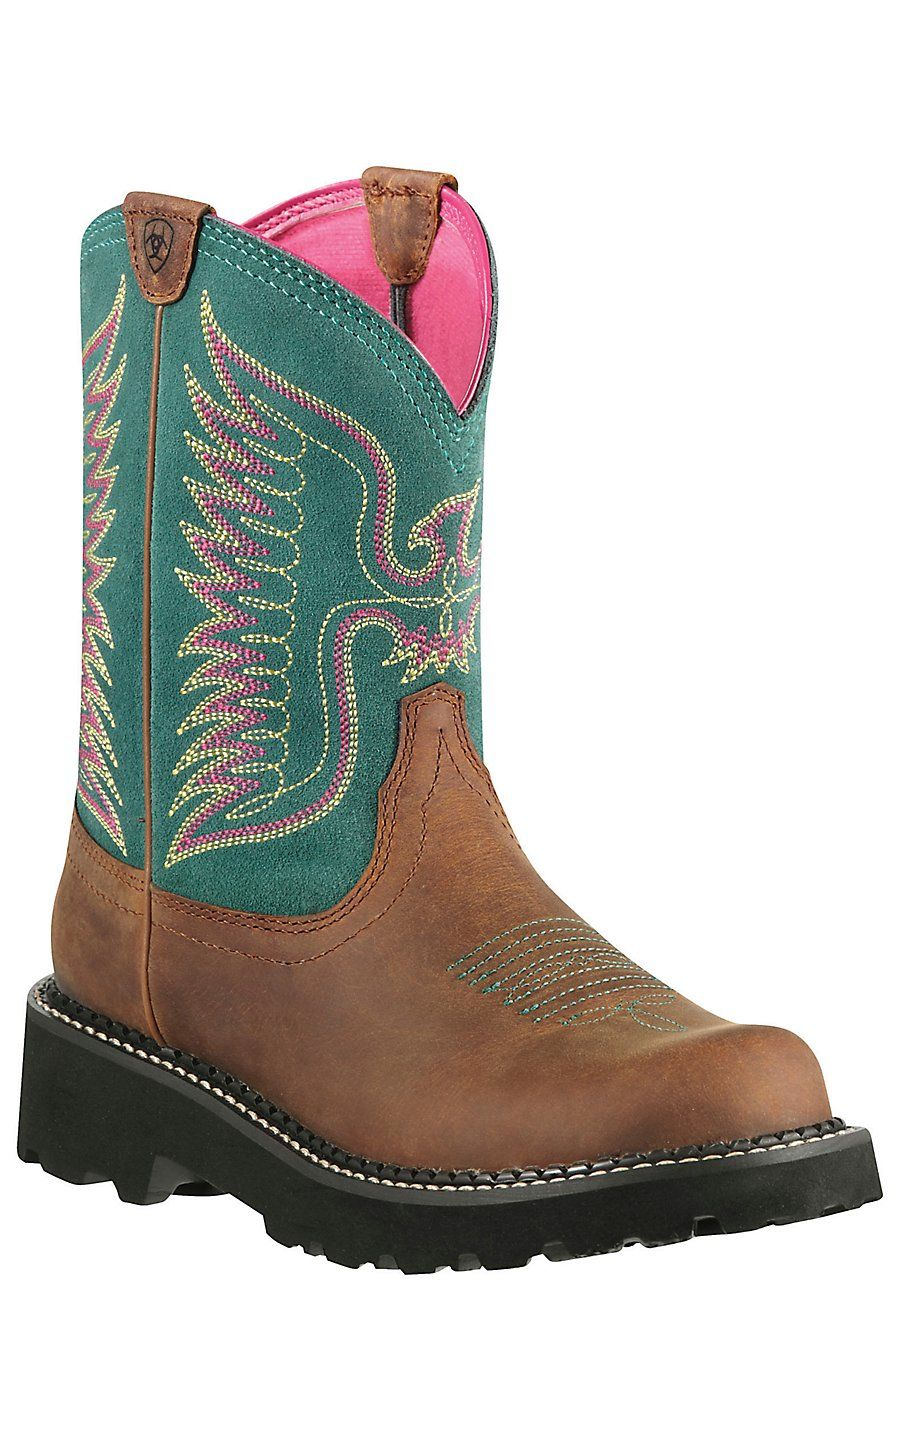 6be2ee0cf96 Ariat® Fatbaby™ Women's Powder Brown w/ Teal Thunderbird Upper ...